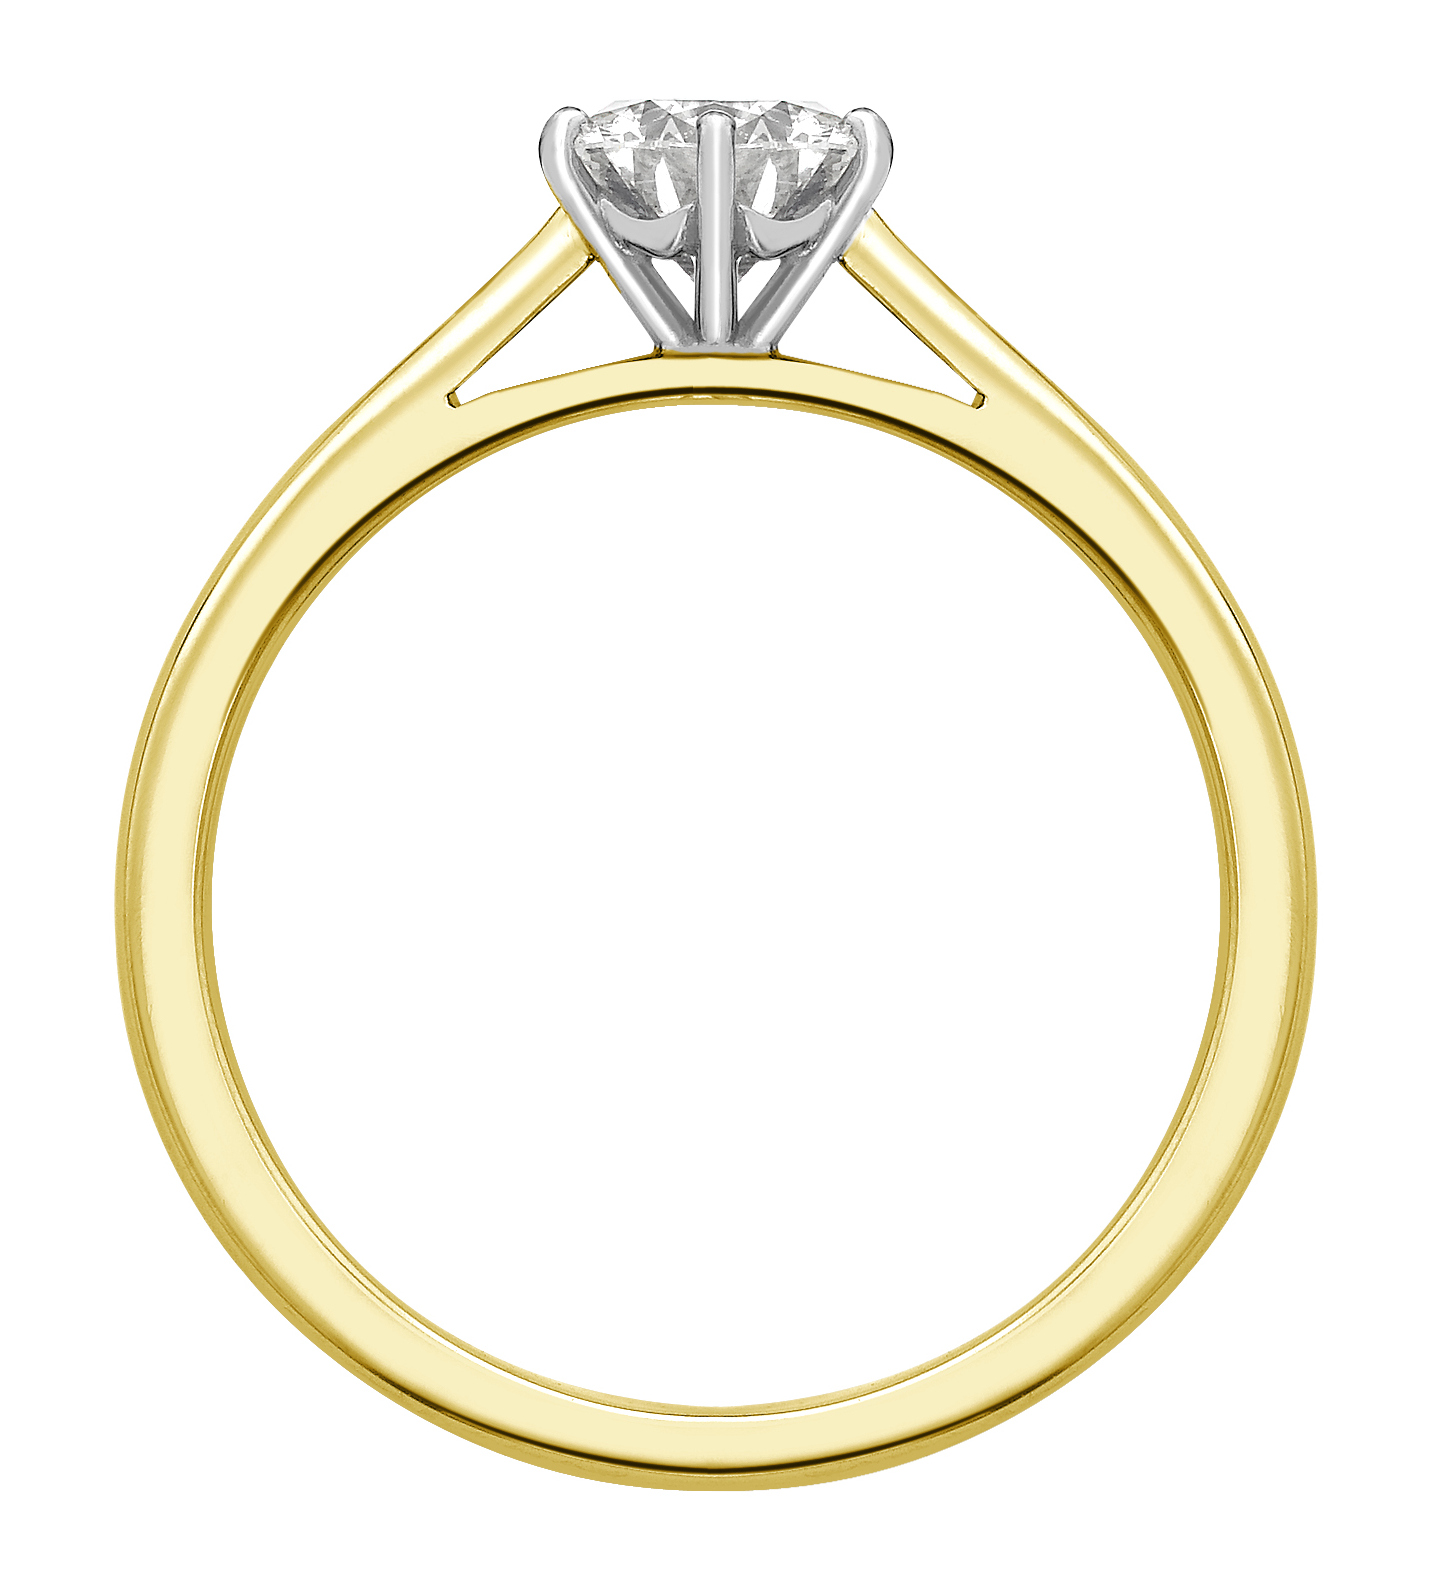 Round Six Claw Yellow Gold Engagement Ring GRC757YG Image 2